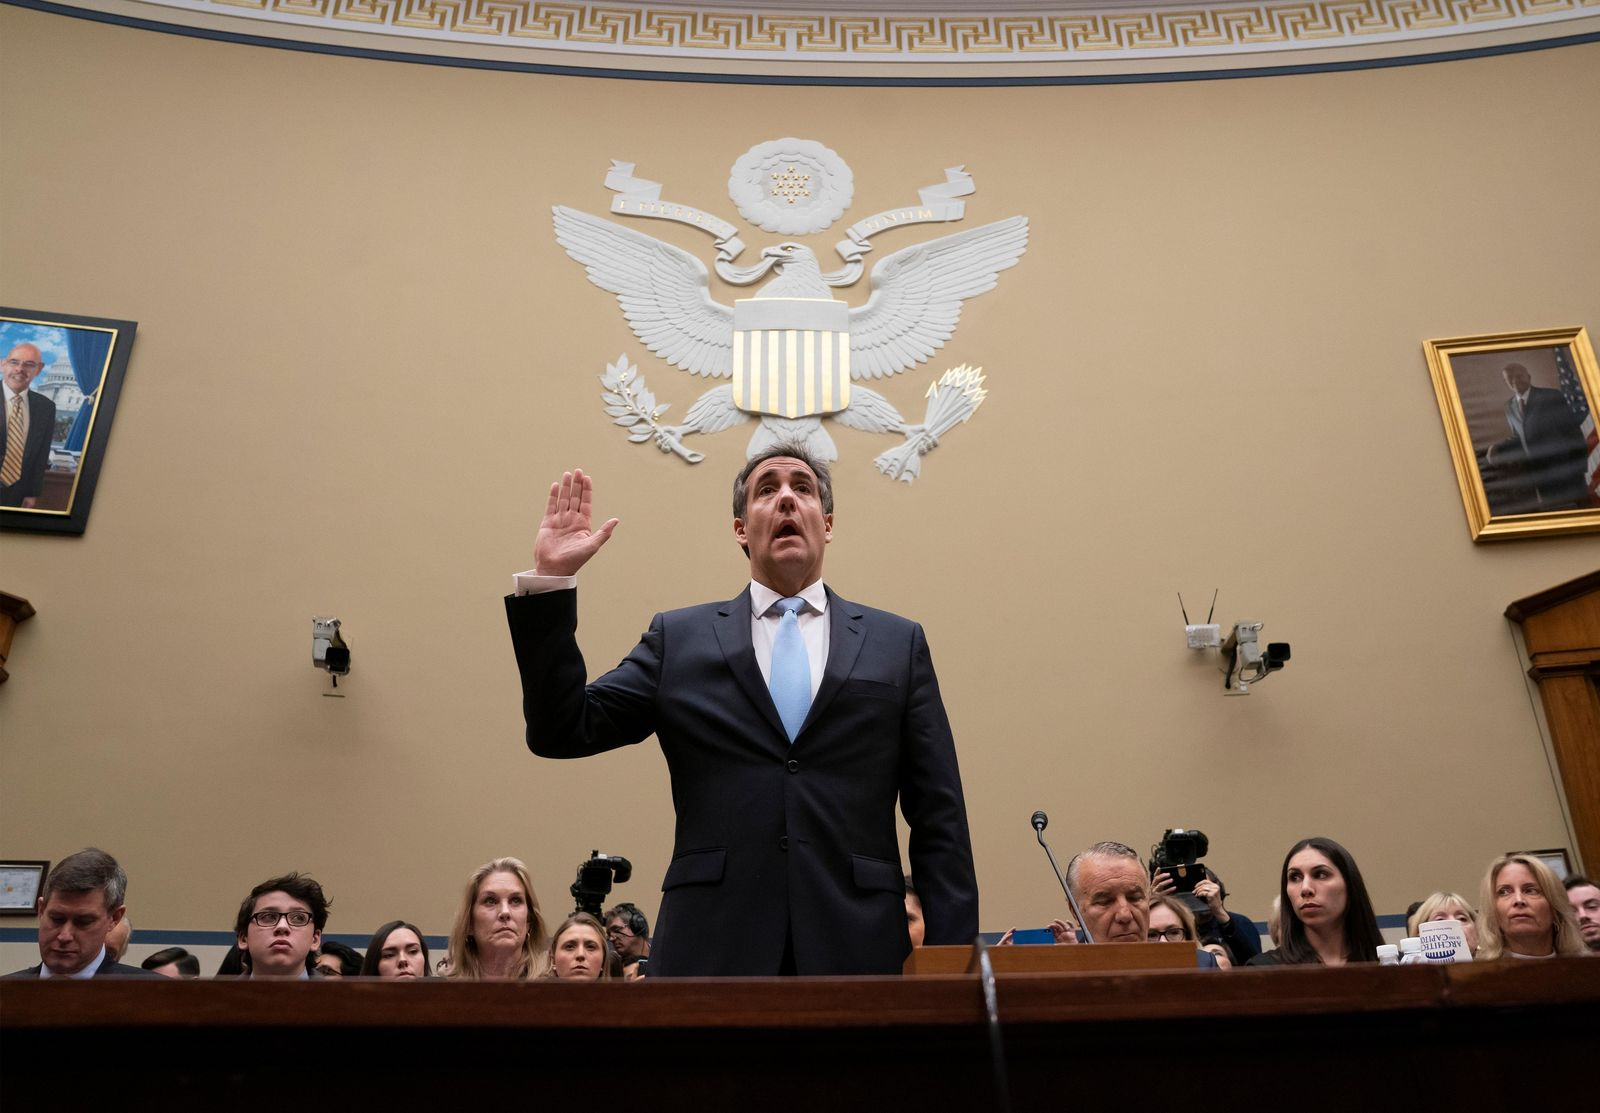 FILE- In this Feb. 27, 2019 file photo, Michael Cohen, President Donald Trump's former personal lawyer, is sworn in to testify before the House Oversight and Reform Committee on Capitol Hill in Washington. (AP Photo/J. Scott Applewhite, File)